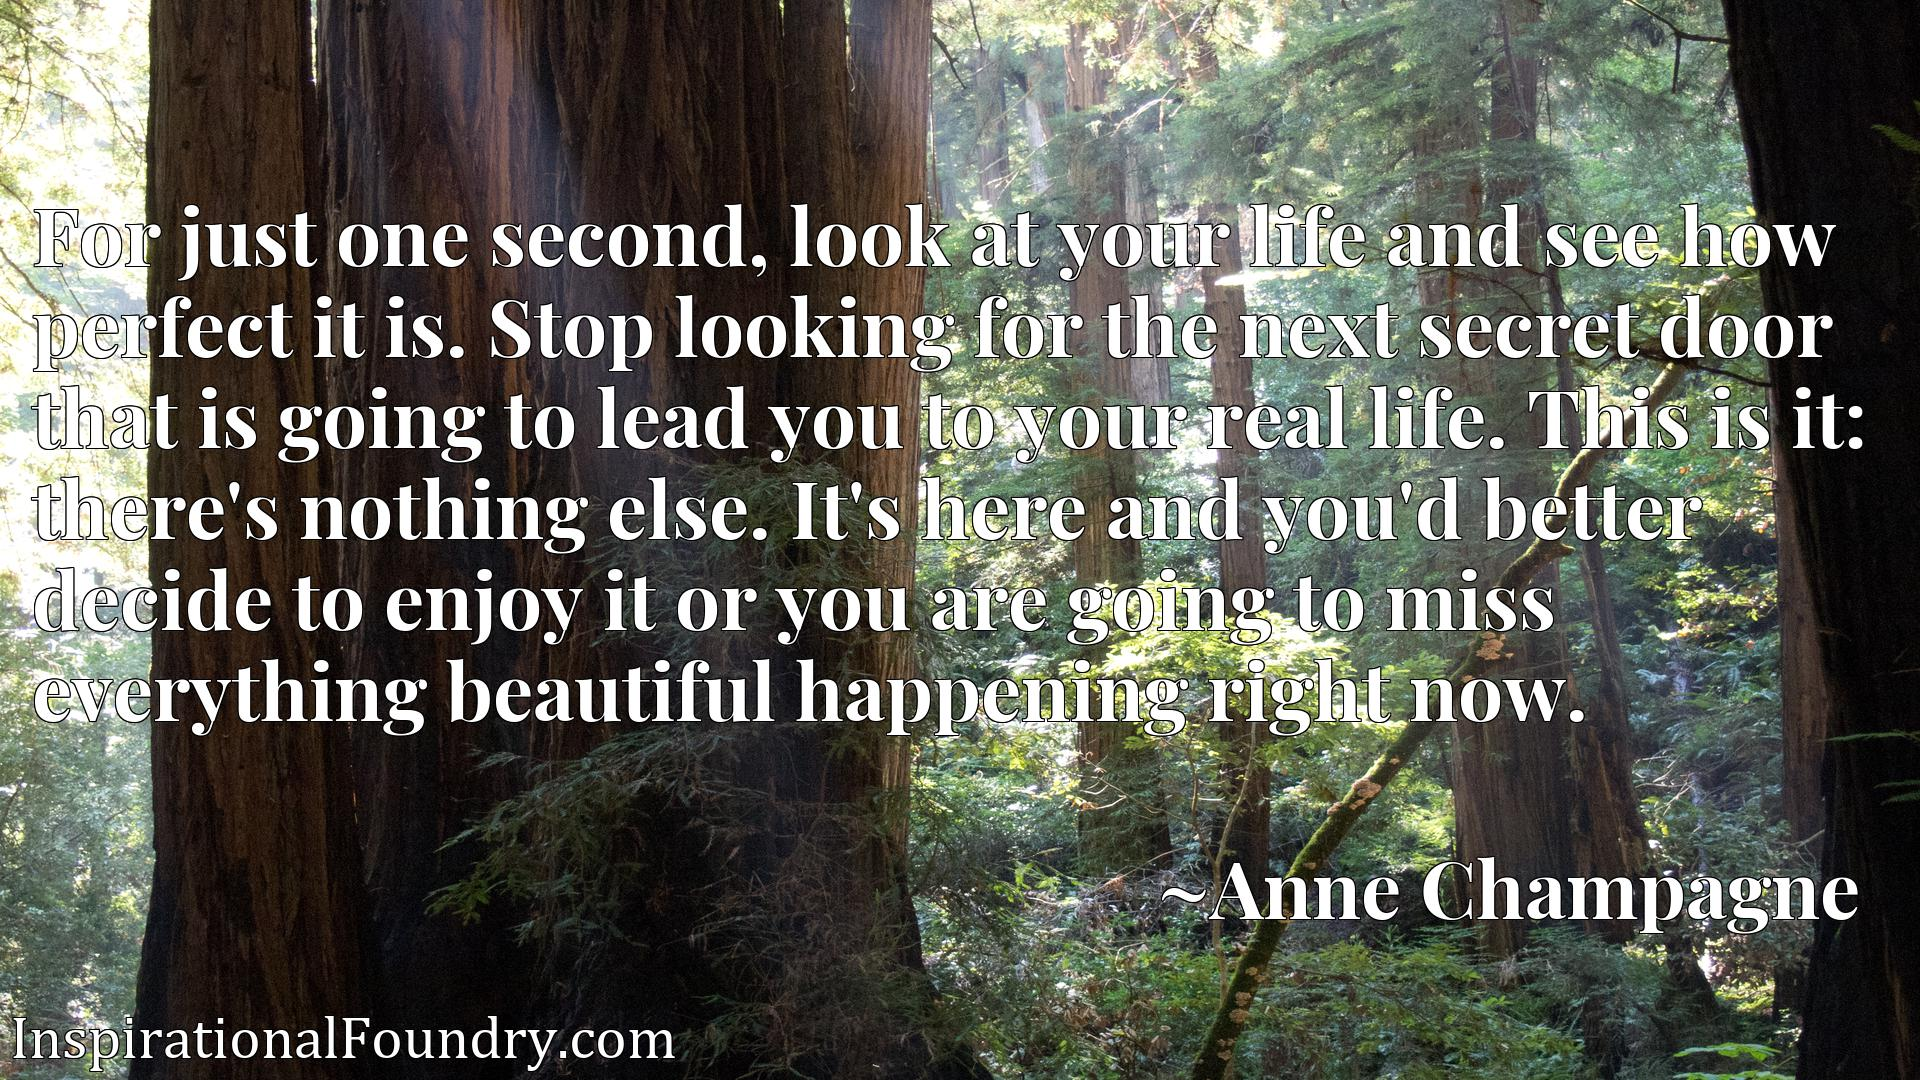 For just one second, look at your life and see how perfect it is. Stop looking for the next secret door that is going to lead you to your real life. This is it: there's nothing else. It's here and you'd better decide to enjoy it or you are going to miss everything beautiful happening right now.